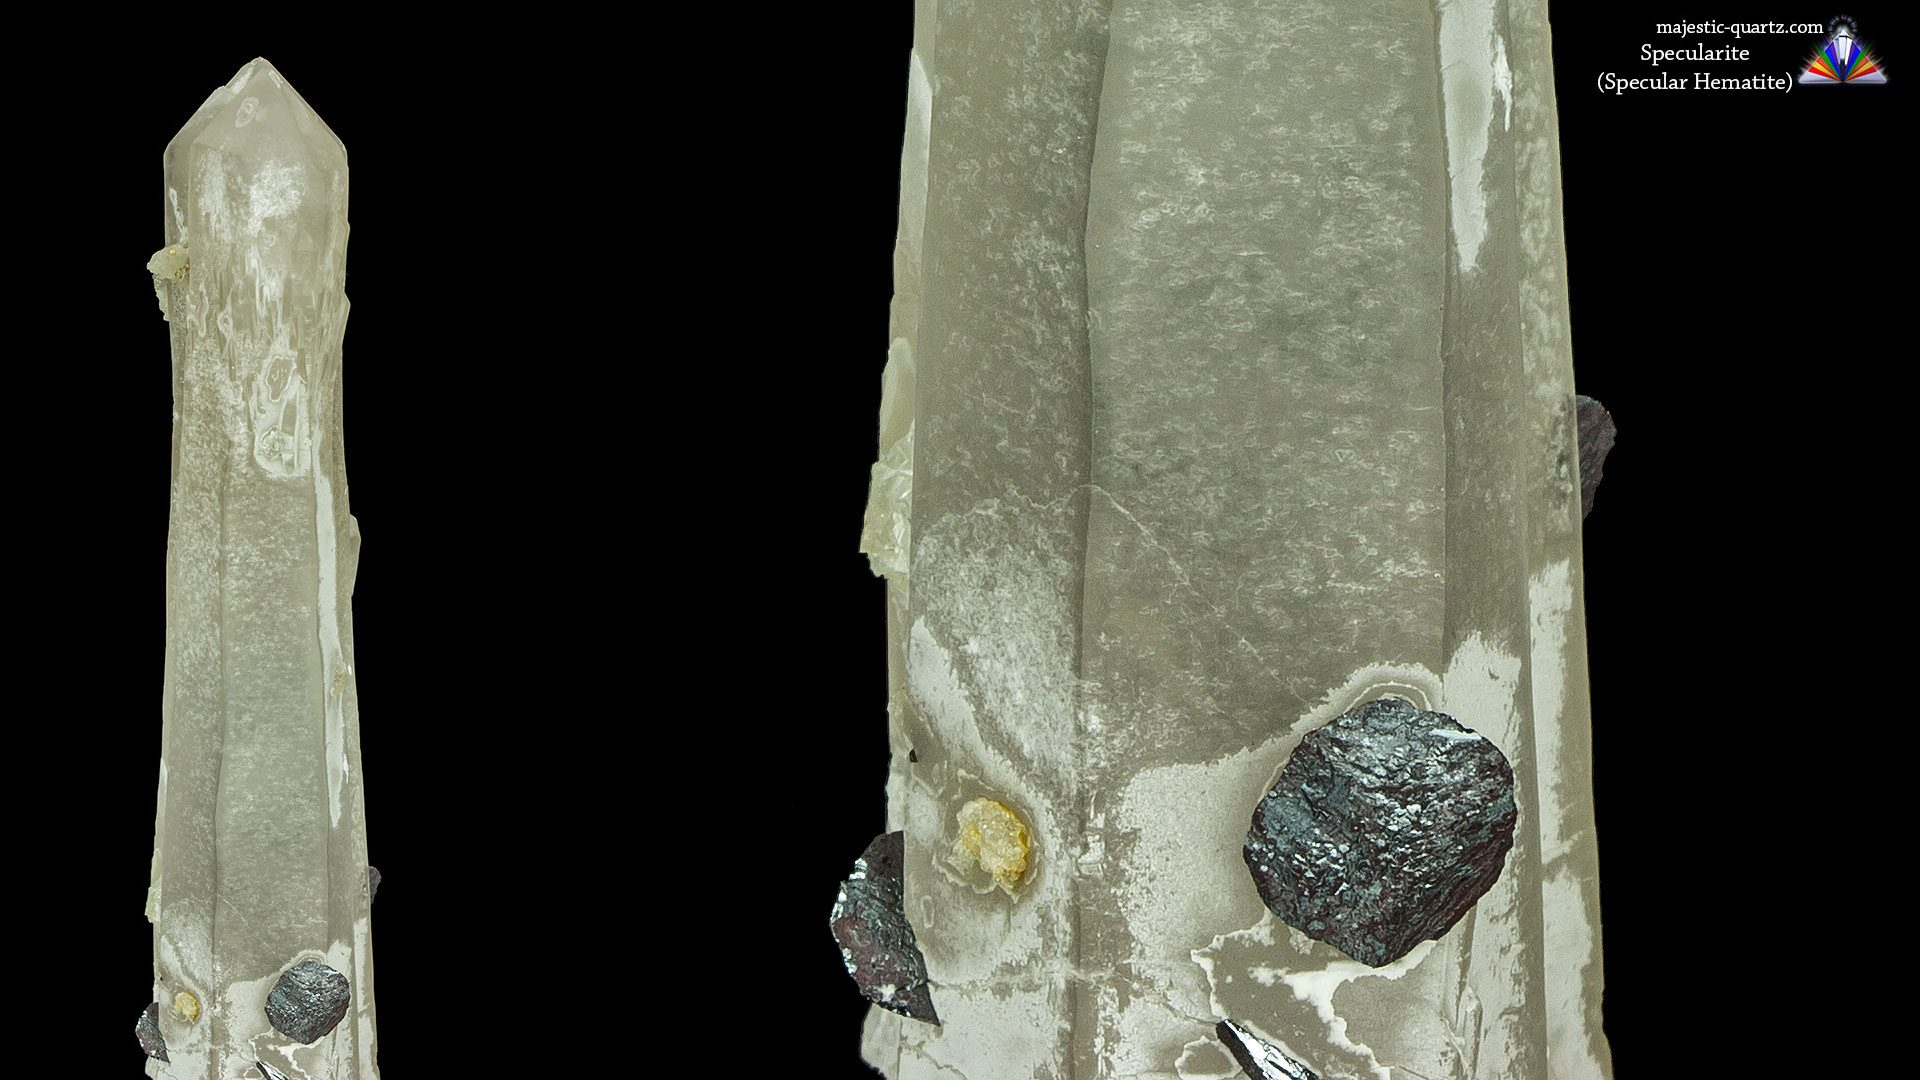 Specularite Included Mongolian Quartz - Photograph by Anthony Bradford